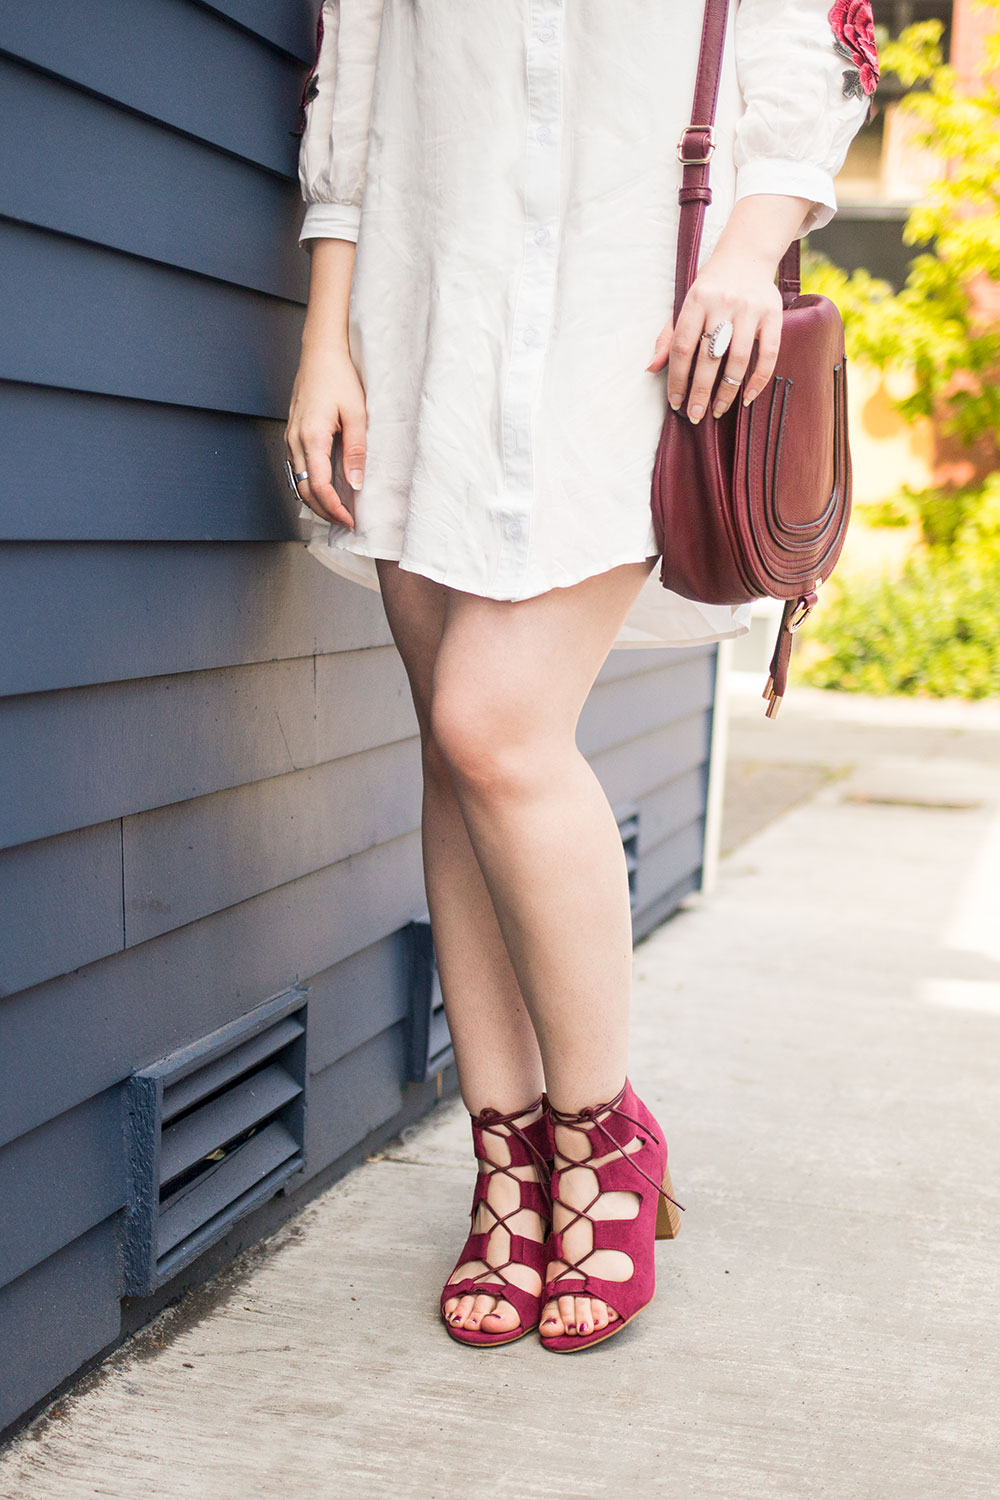 Columbia City Seattle Style // Hello Rigby Seattle Fashion Blog